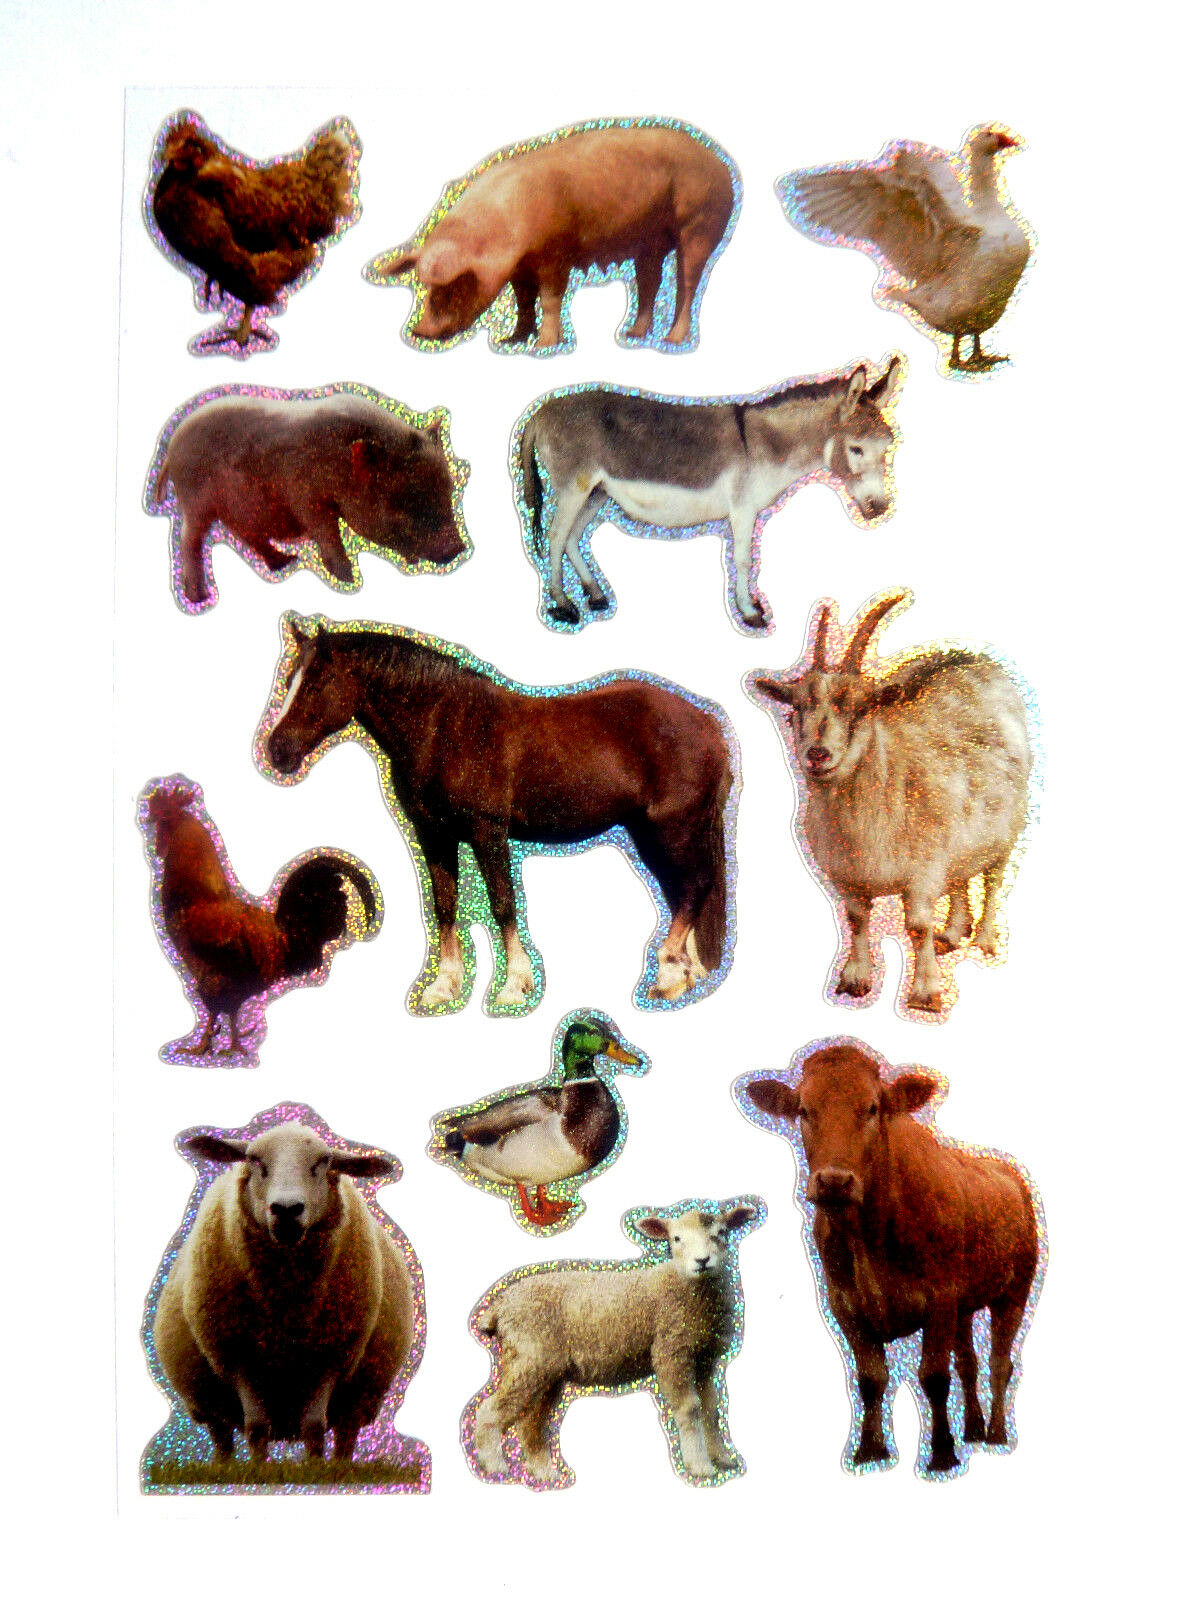 Farm Animal Stickers Childrens Labels For Kids Craft And Decoration Puffy Sticker Farmyard Fun Ls43 1 Of 3free Shipping